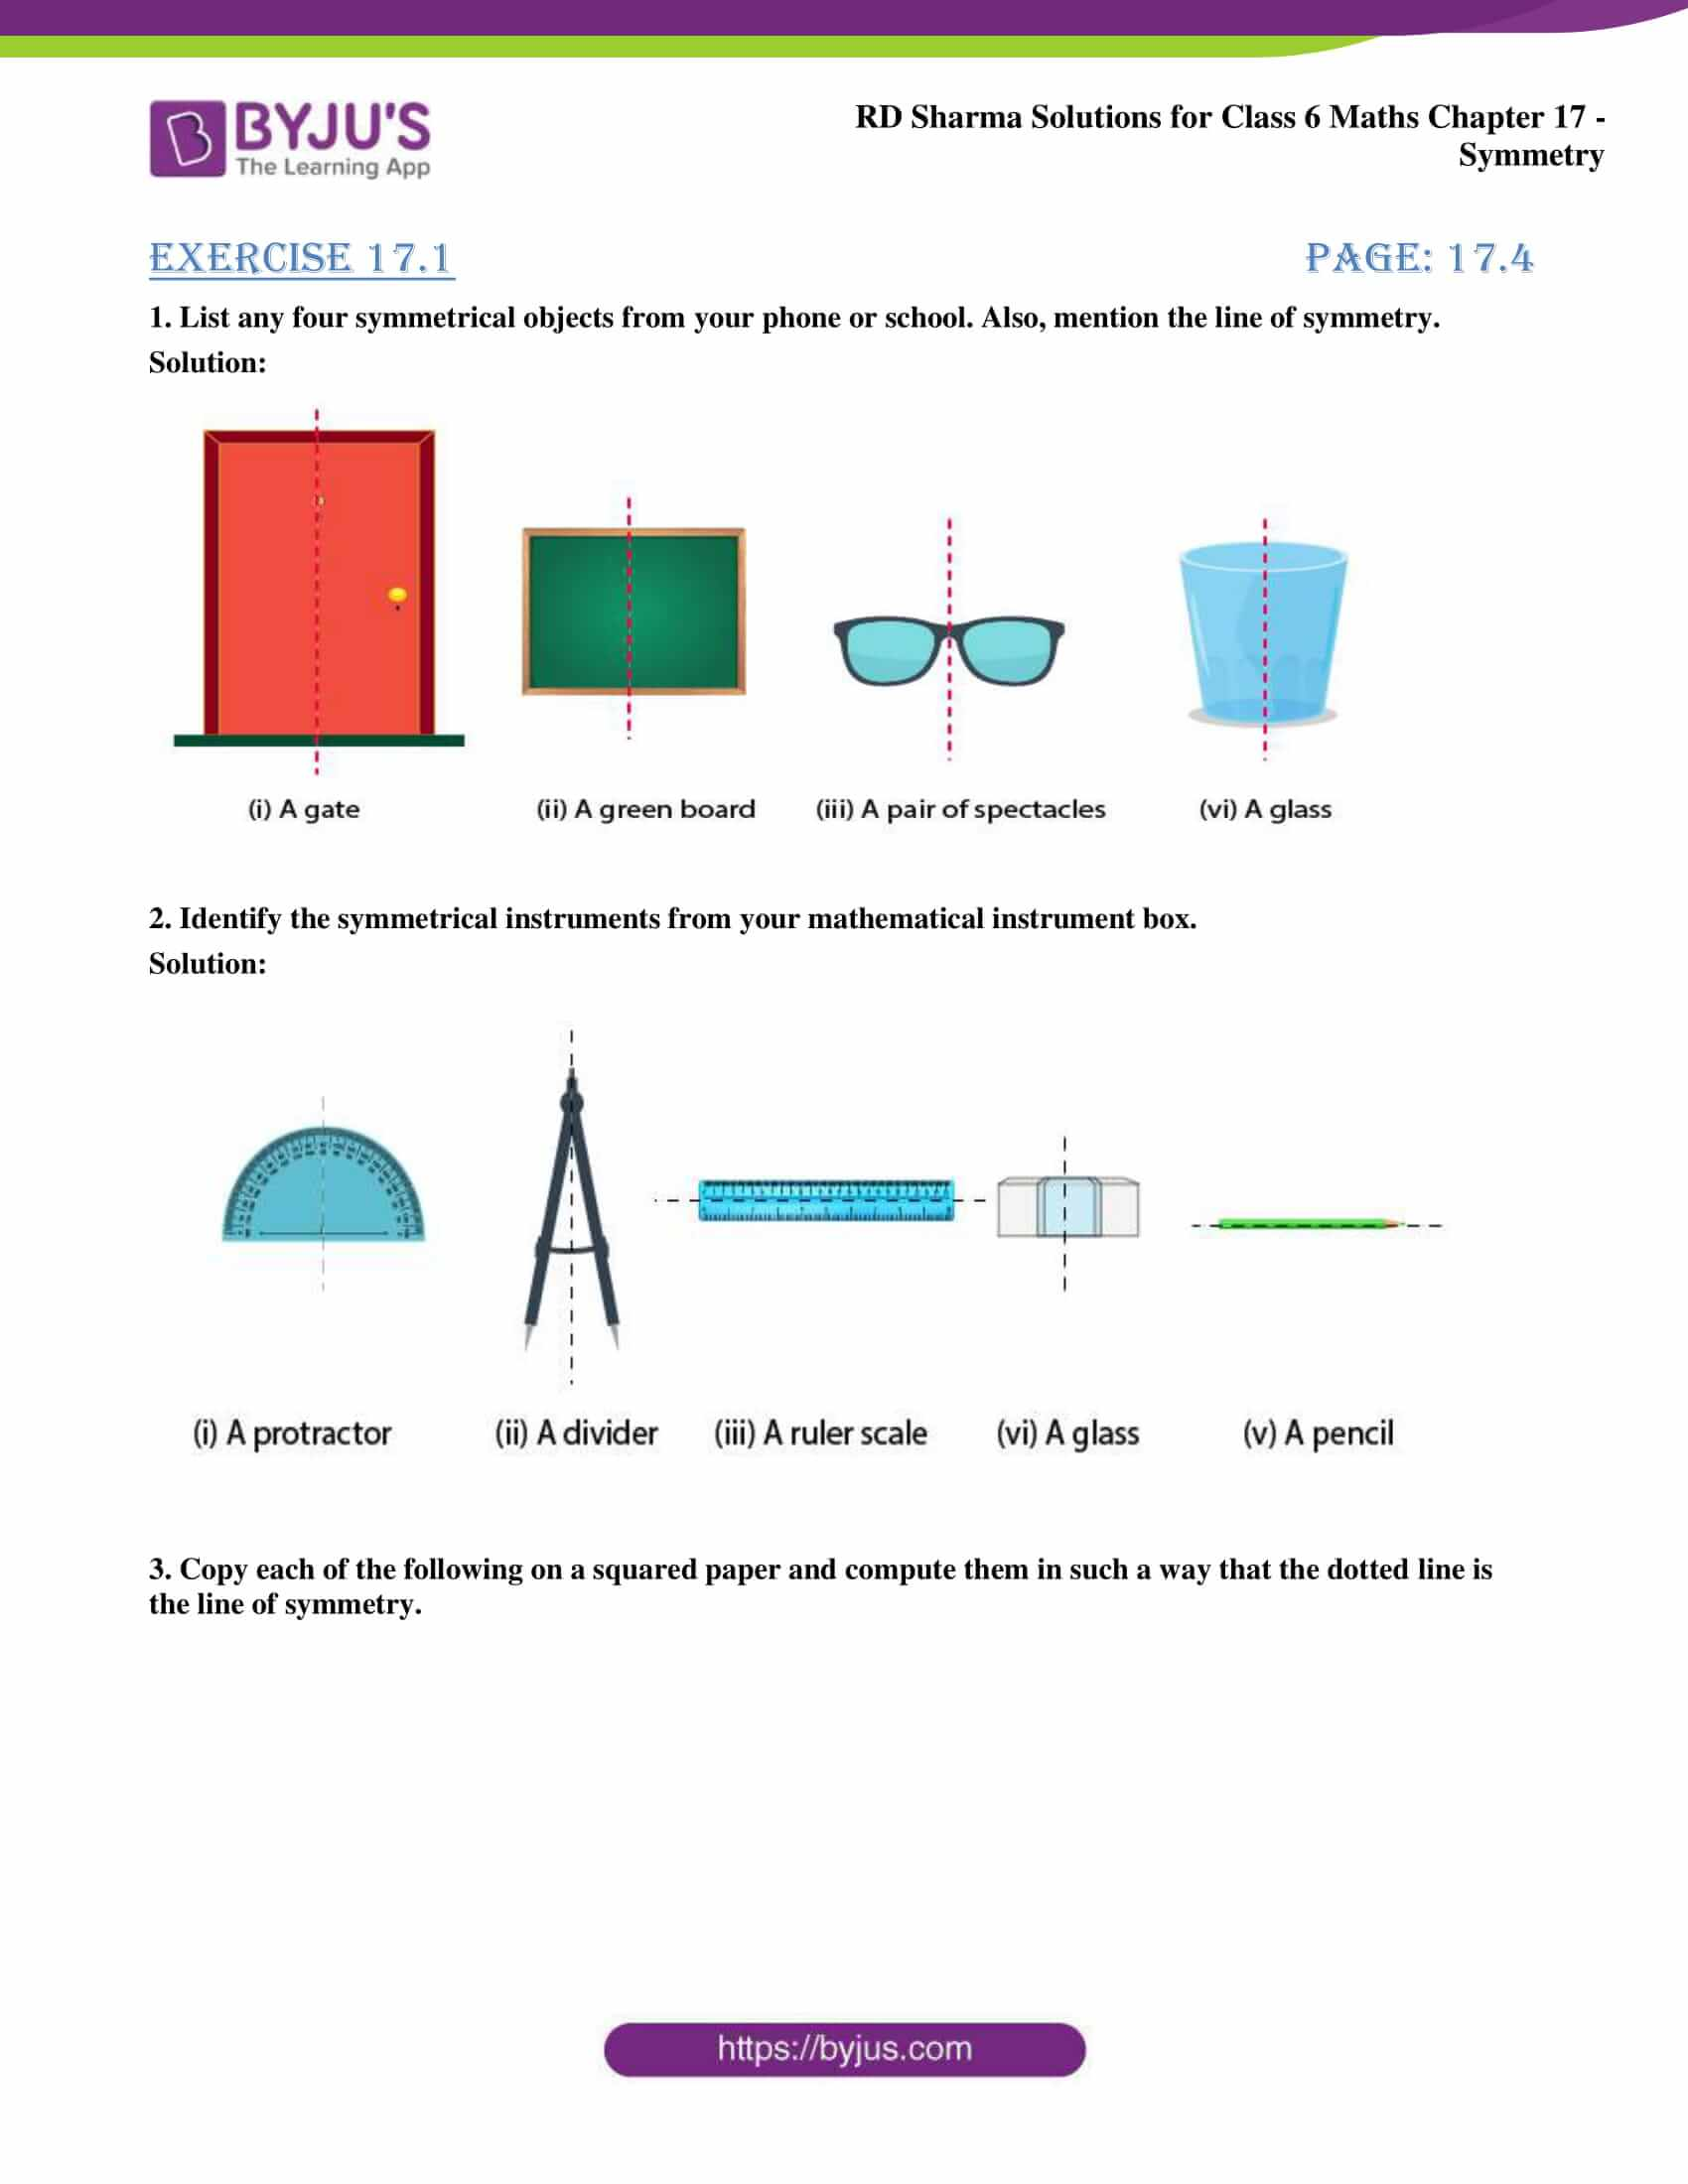 rd sharma solutions nov2020 class 6 maths chapter 17 exercise 1 1